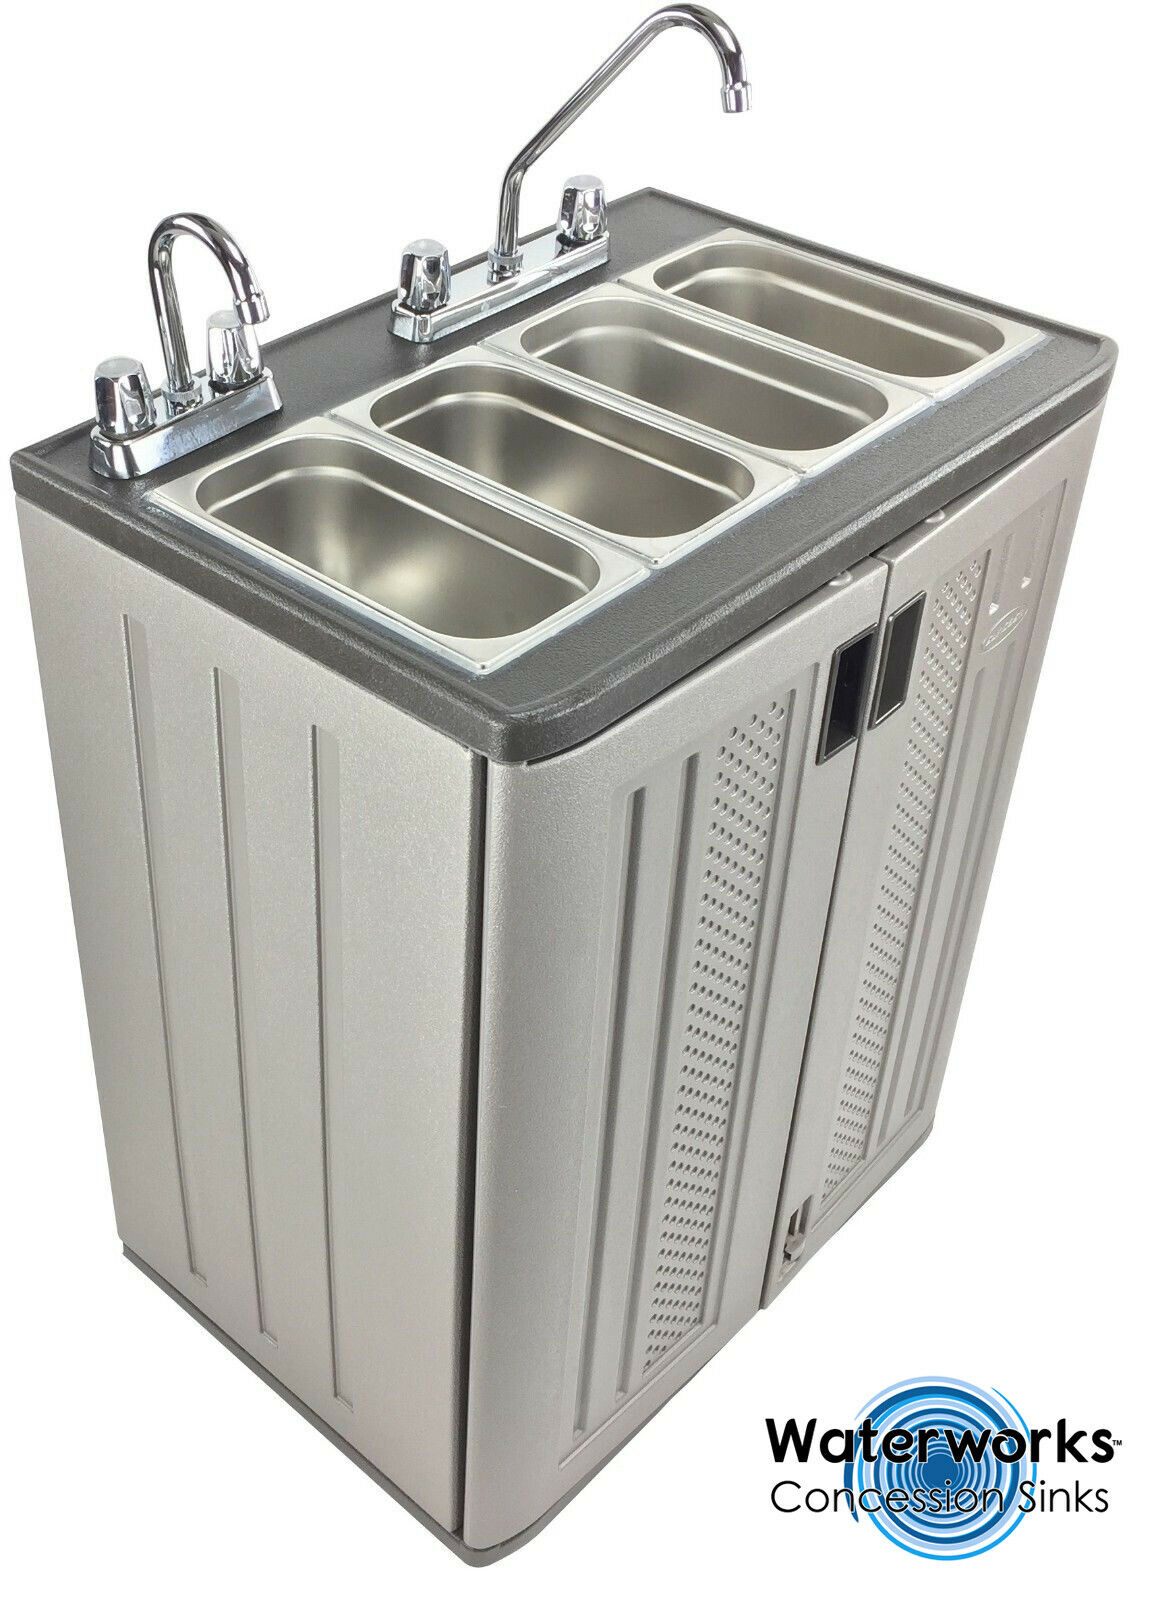 4 Compartment Sink Ready To Install Hot Dog Cart Food Truck Or Trailer For Sale Online Ebay